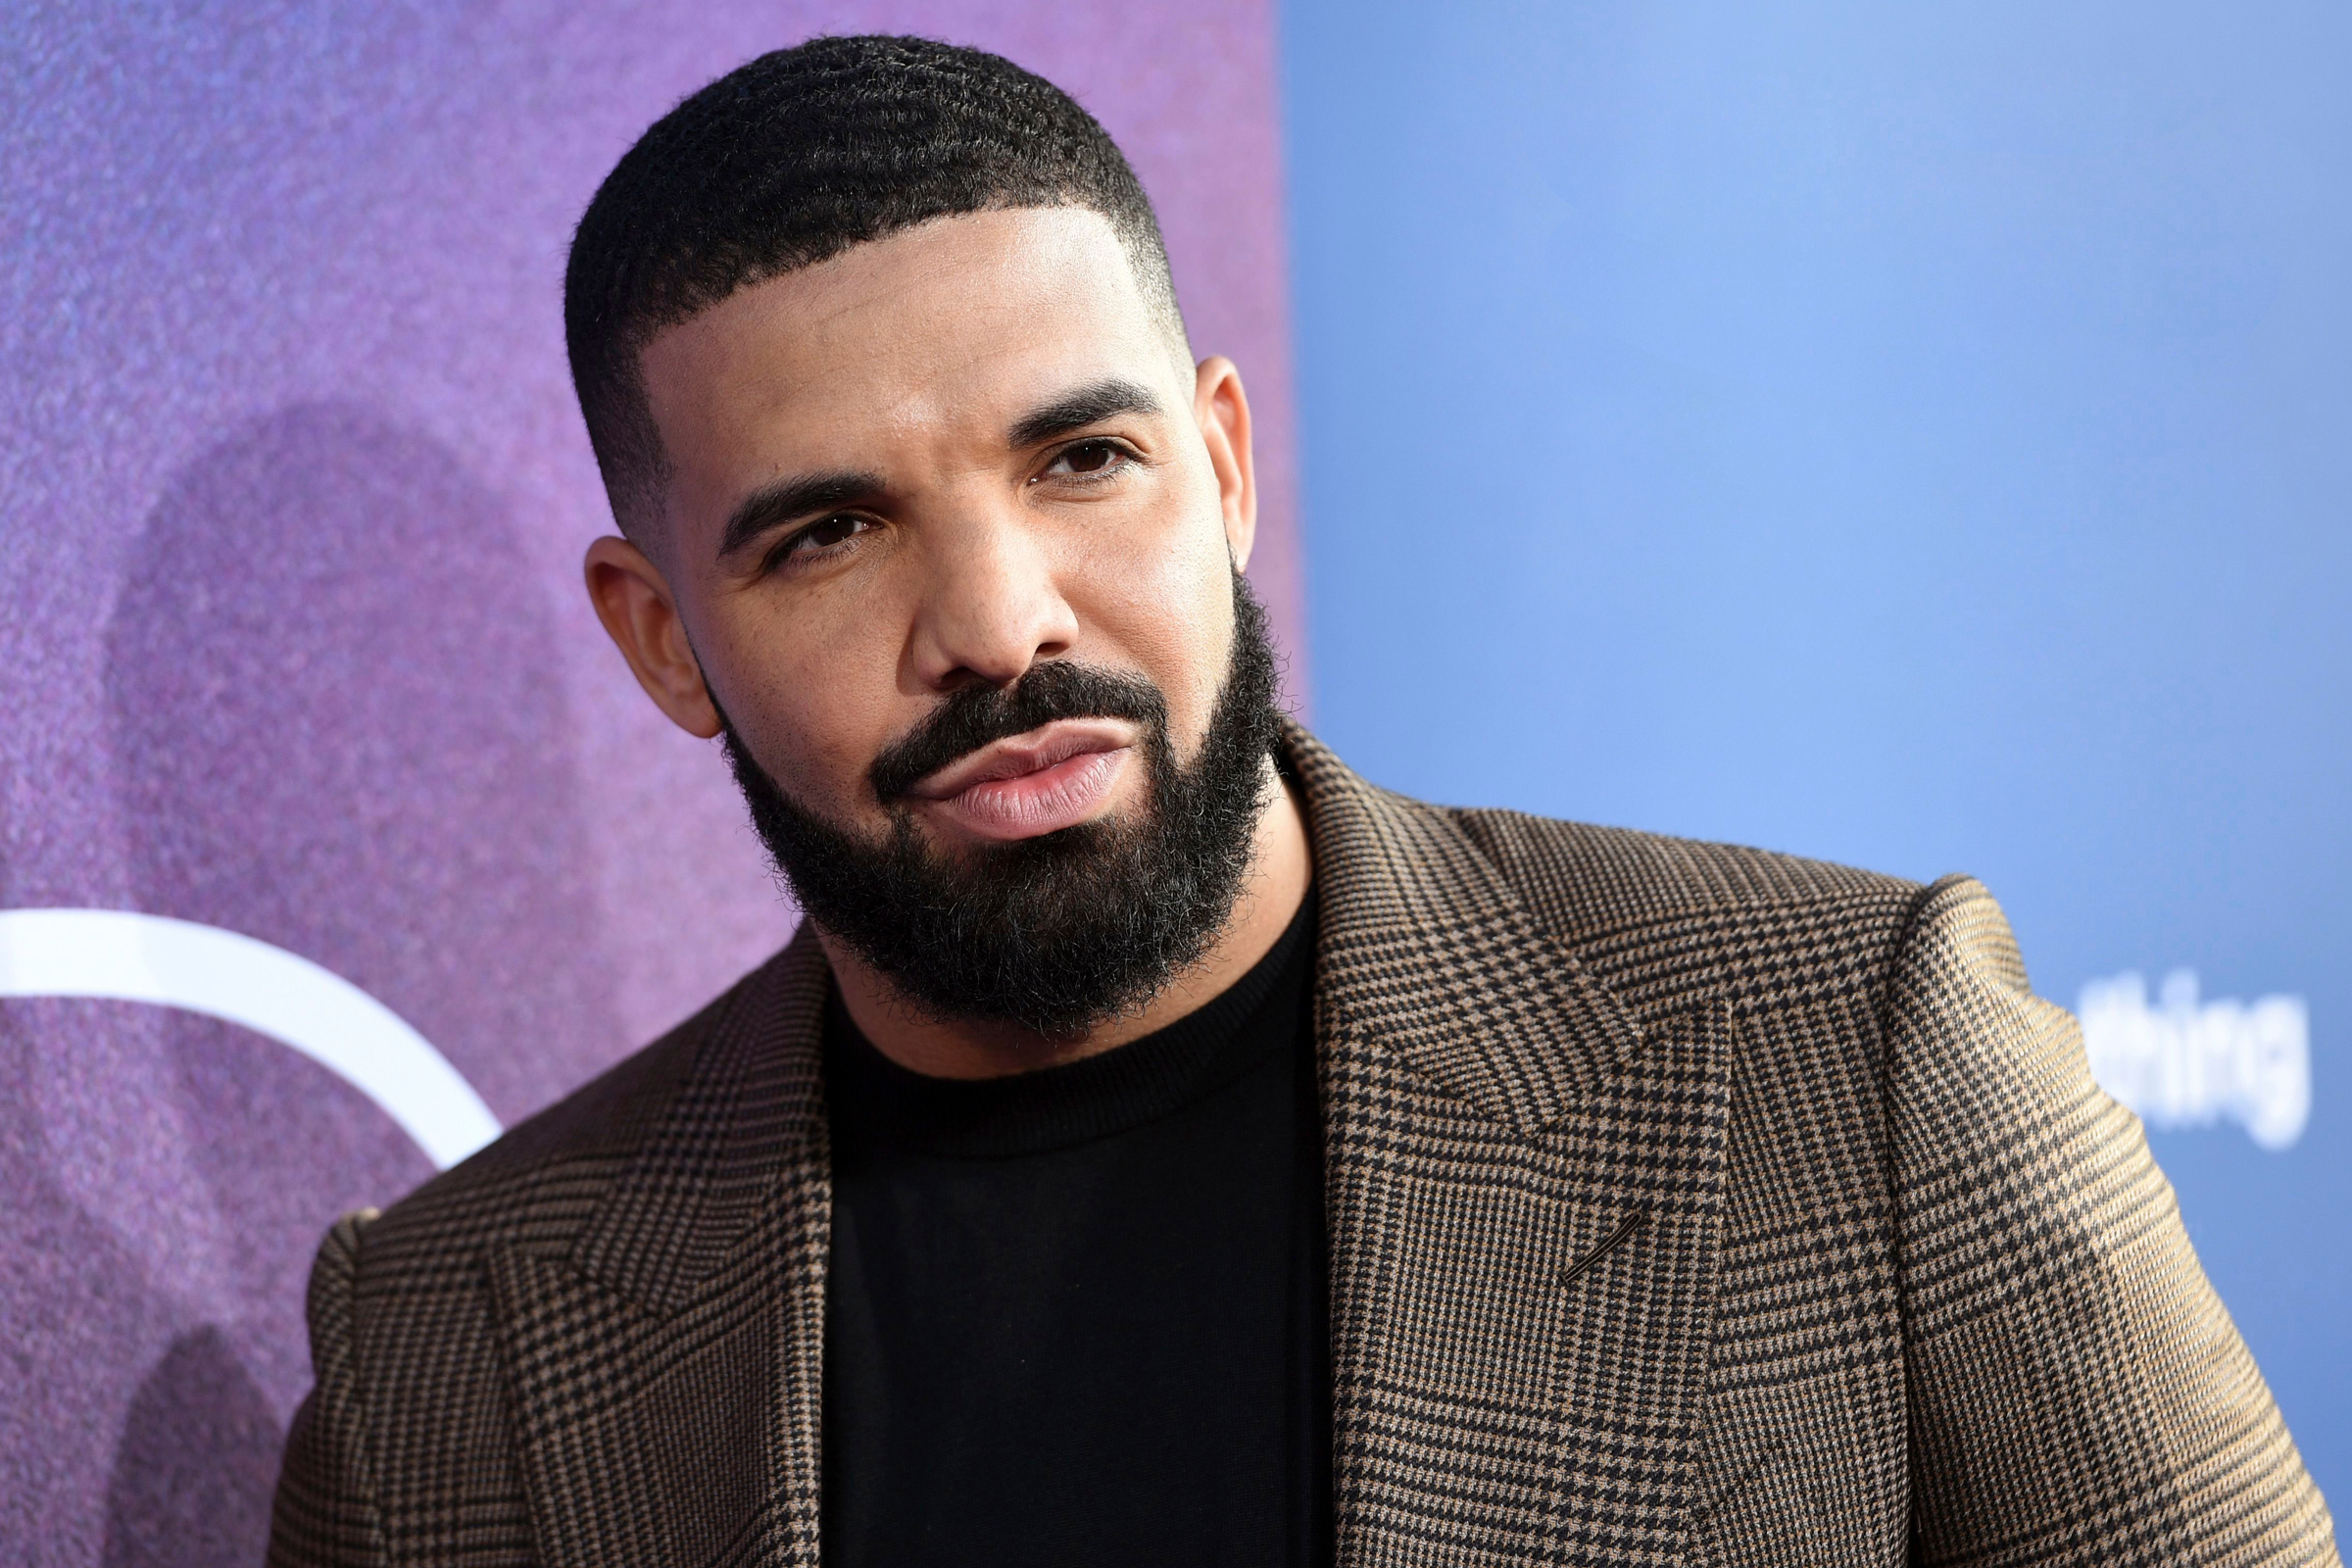 RS Charts: Drake's 'Care Package' Is Number One on Top 200 – Rolling